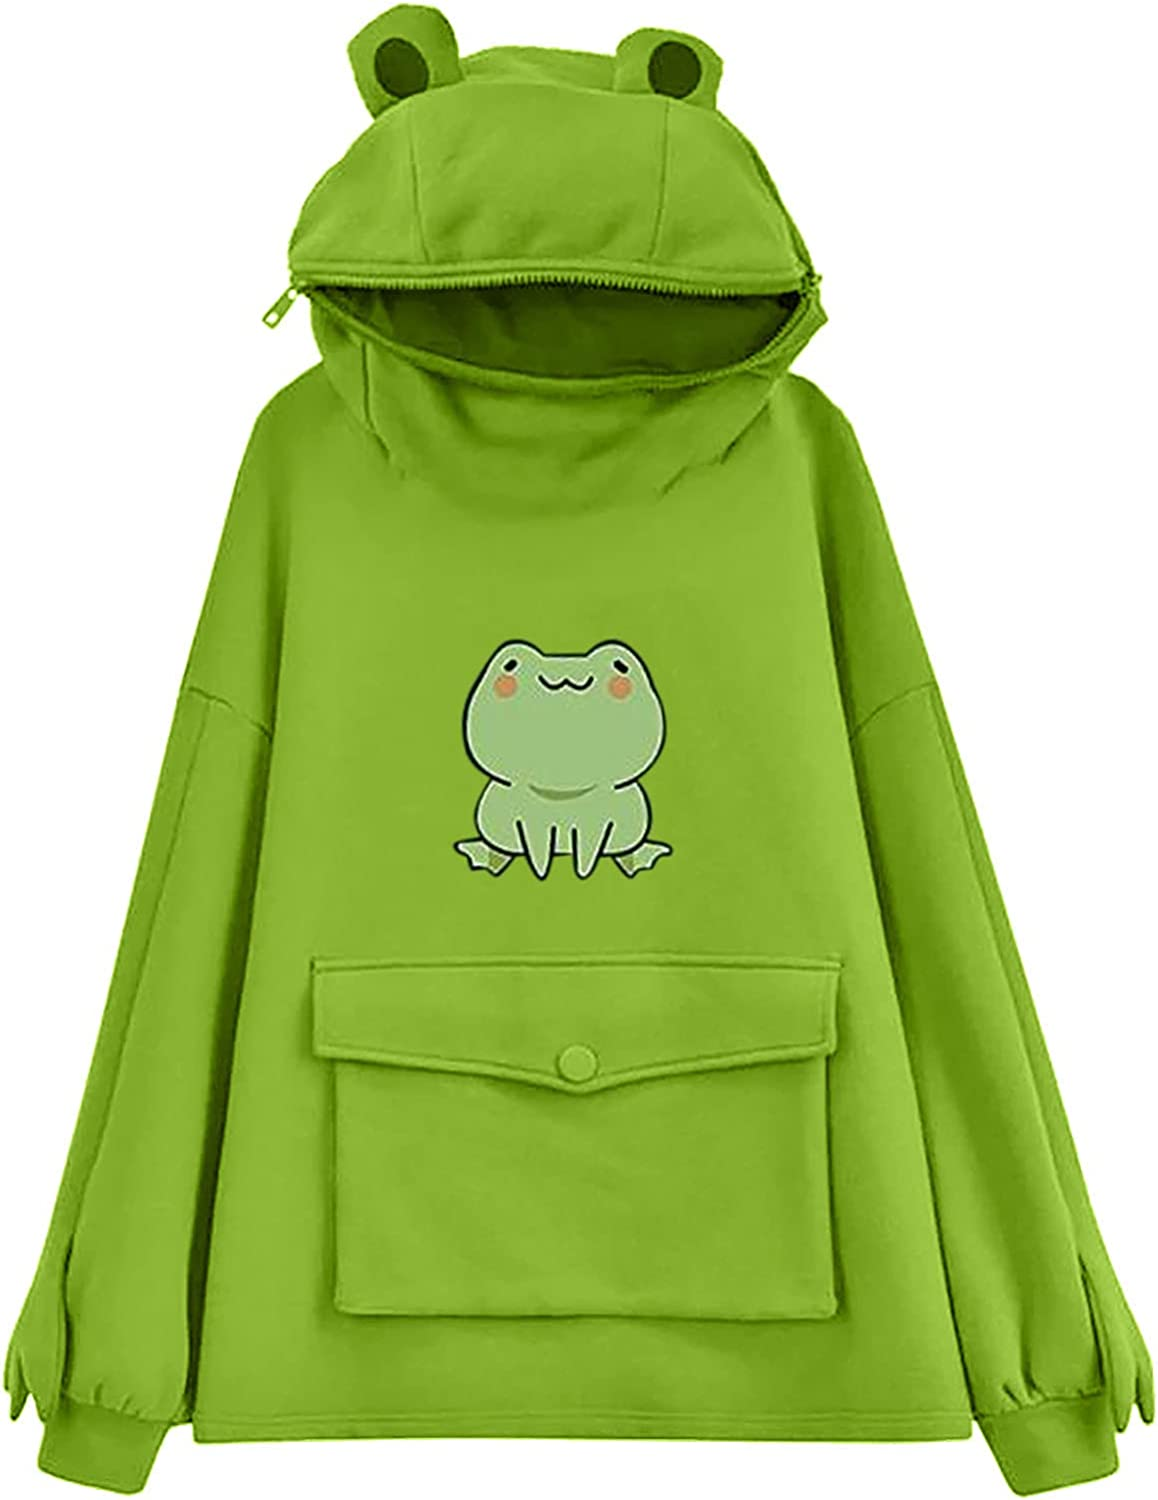 UOCUFY Sweatshirts for Women, Womens Hoodies Frog Hooded Sweatshirts Tops Fall Drawstring Pullover Hoodies with Pockets